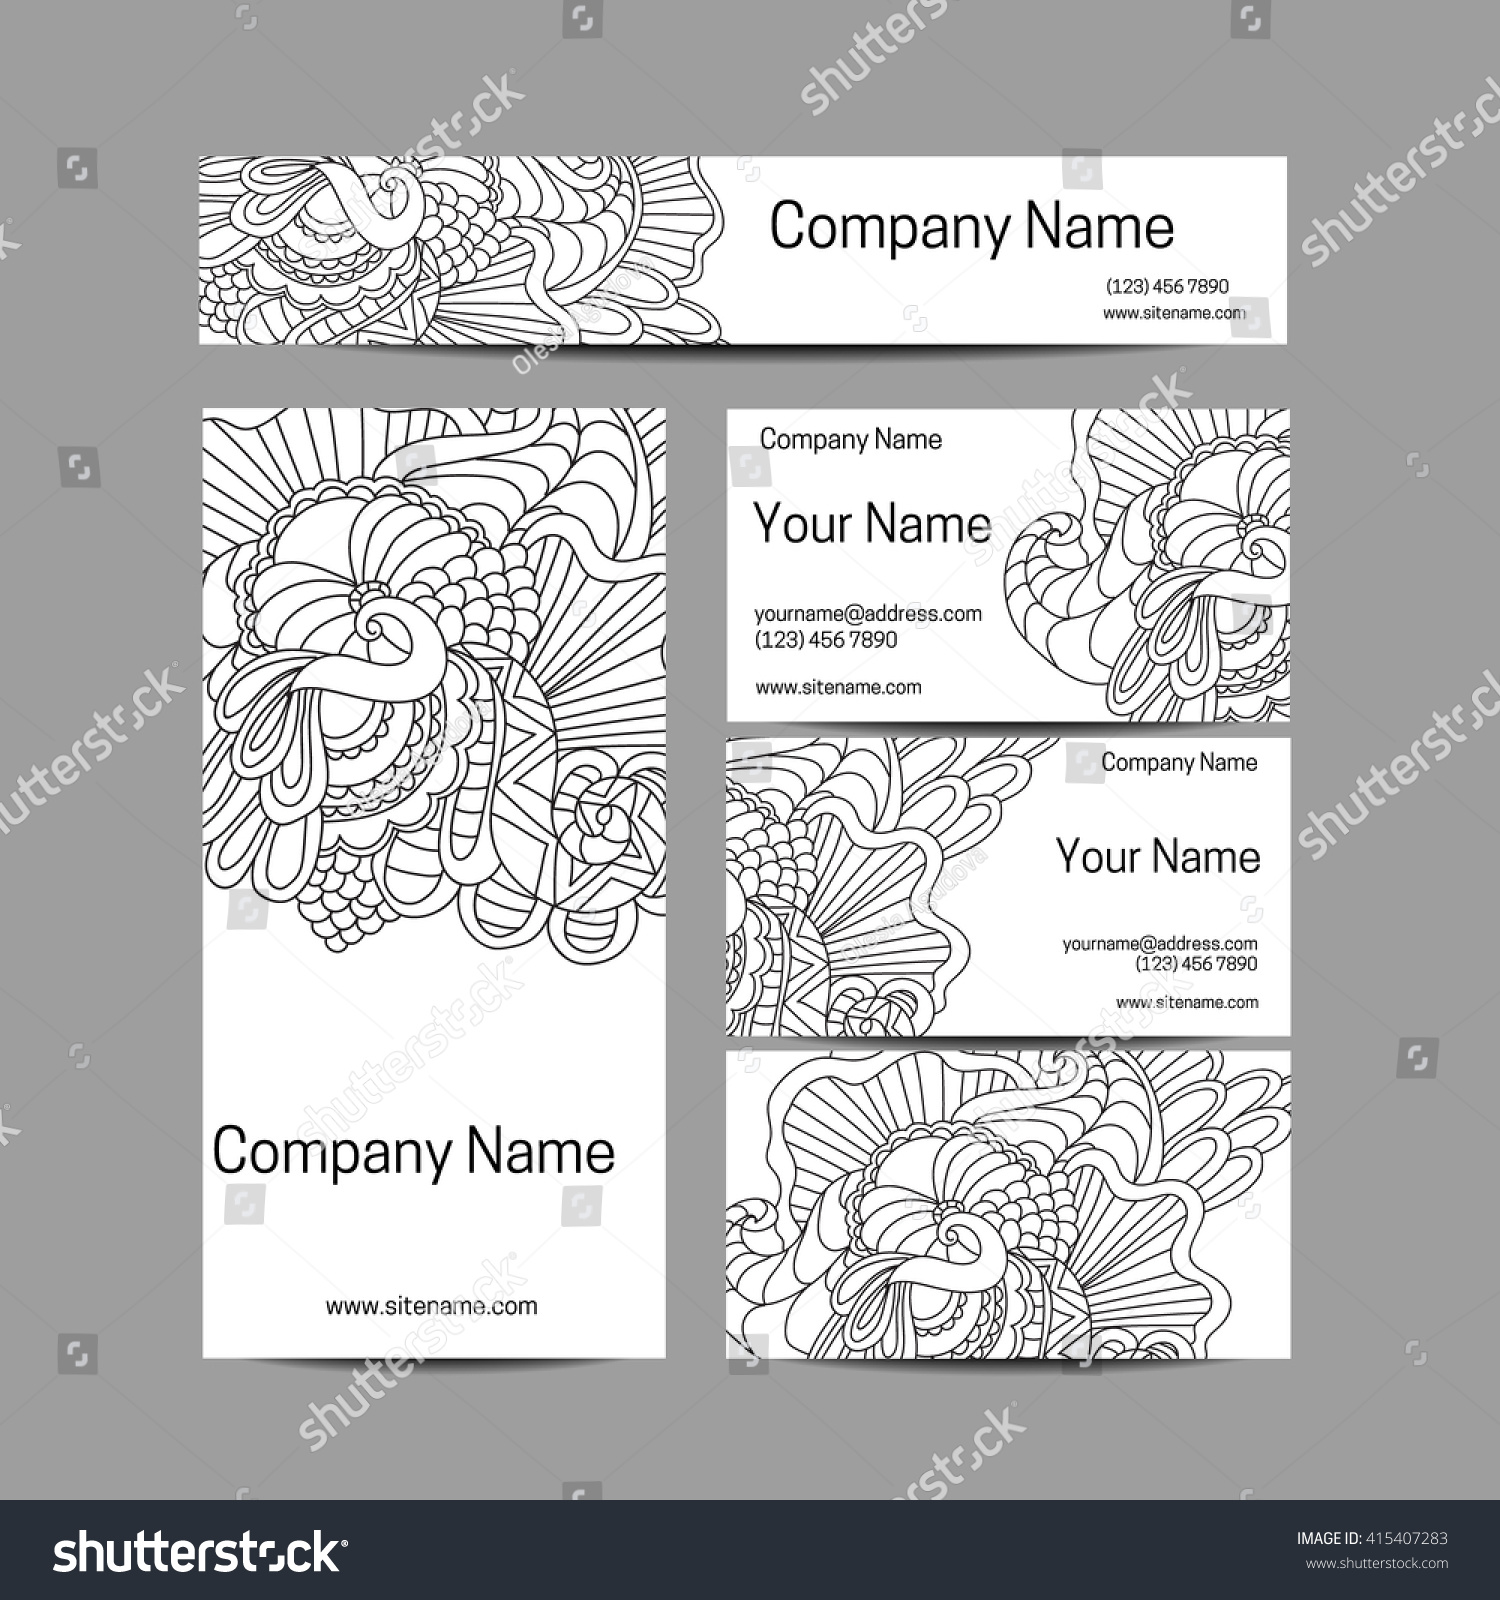 Zentangle Business Cards Gallery - Card Design And Card Template